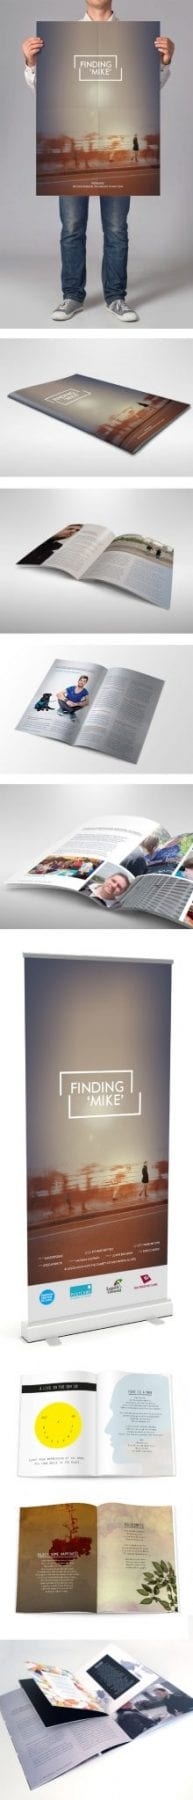 Image of 'Finding Mike' promotional material, designed by graphic designer and branding designer Jessica Croome of Perth WA